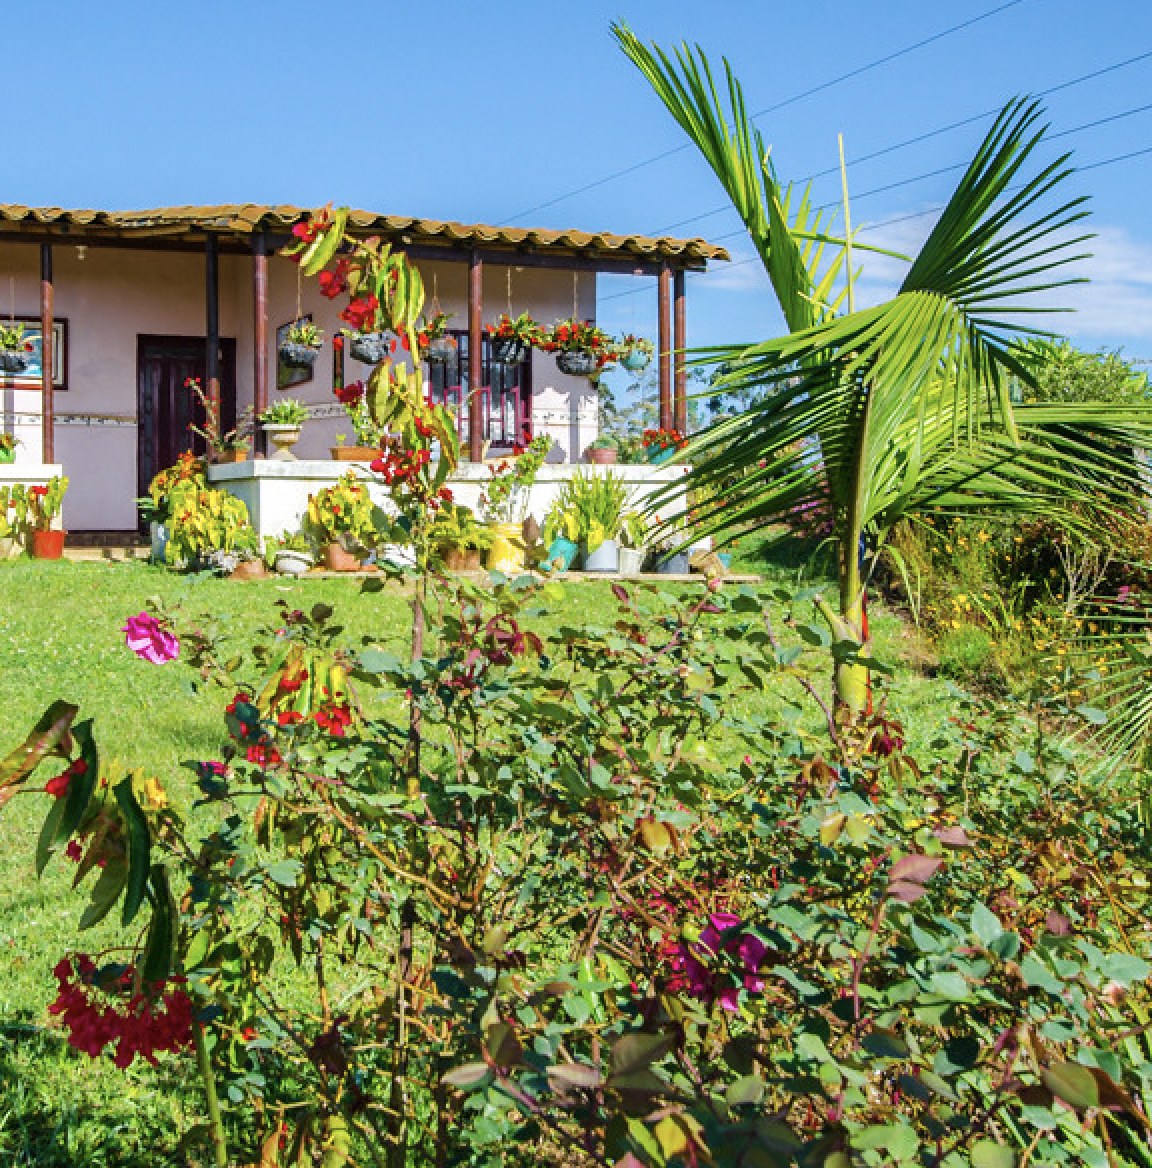 House in Colombia